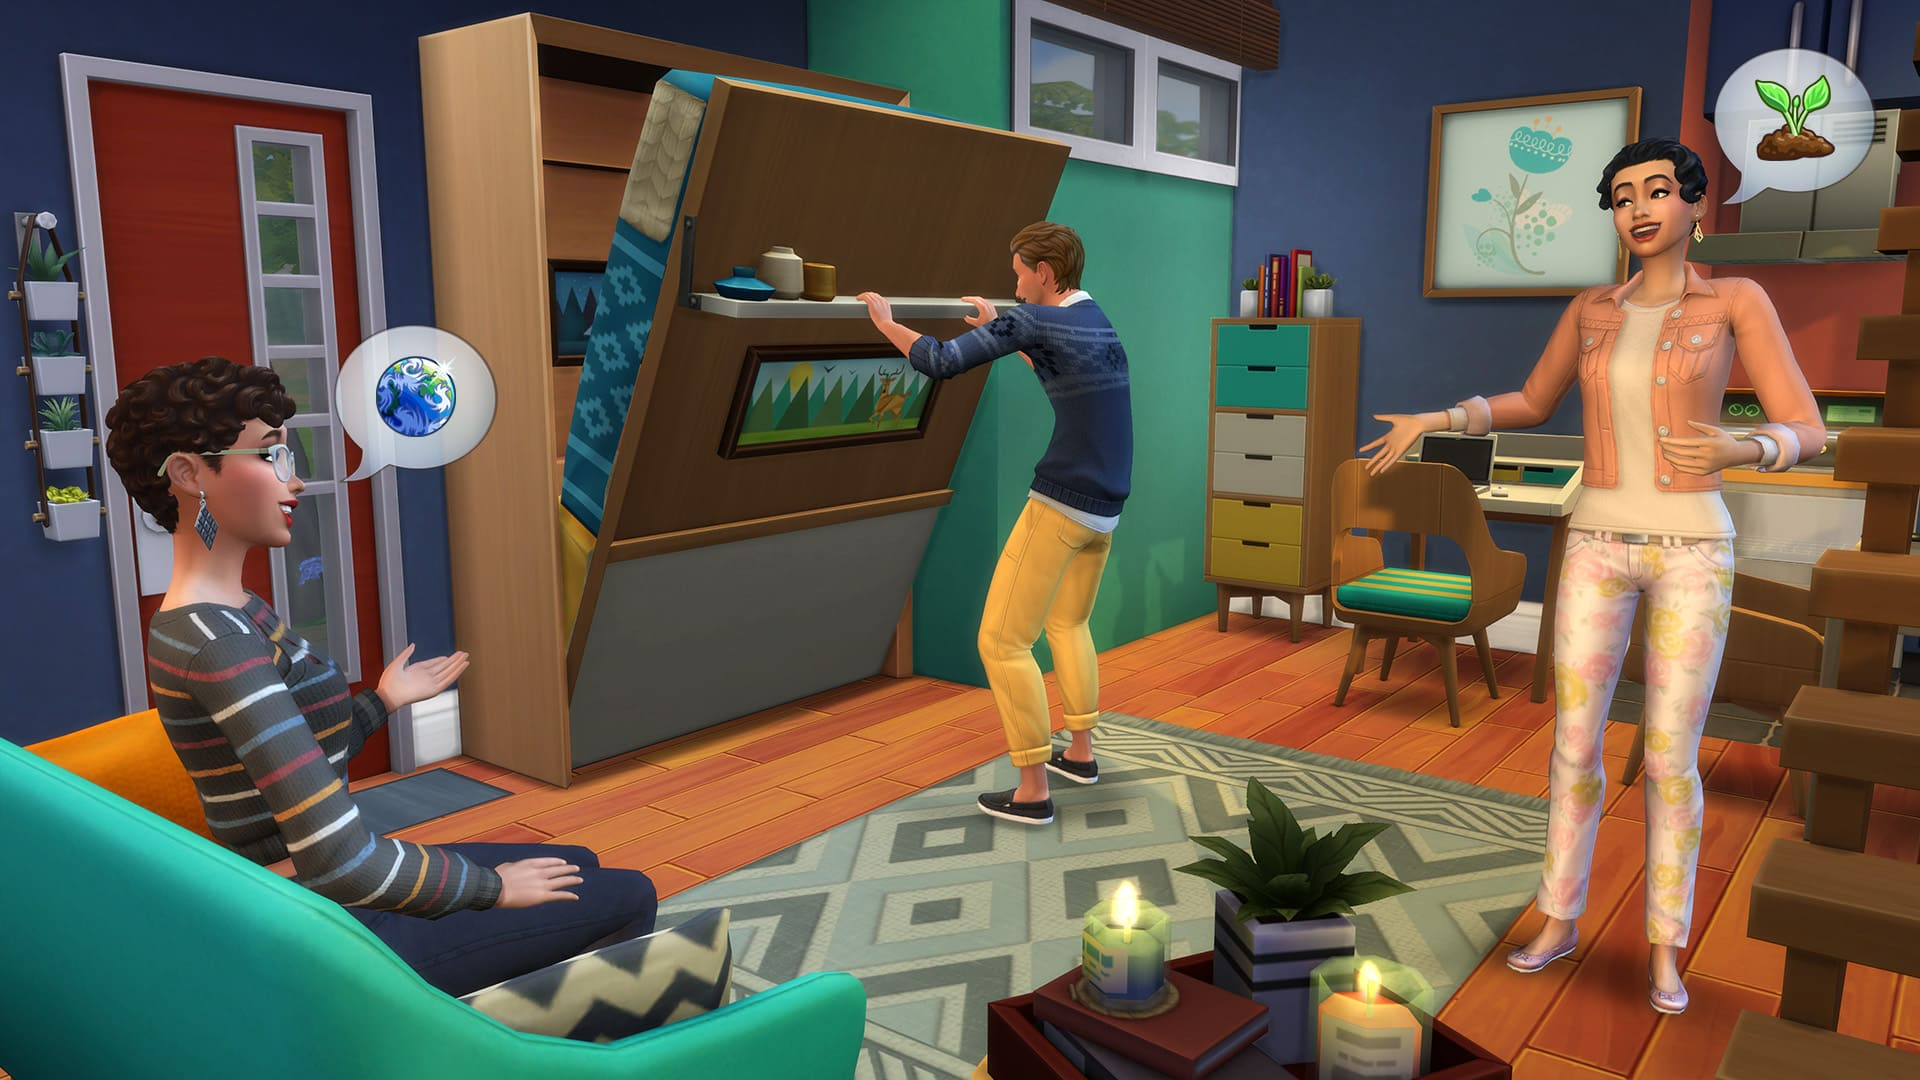 The Sims 4 Mini Case: annunciato il nuovo Stuff Pack con un trailer thumbnail